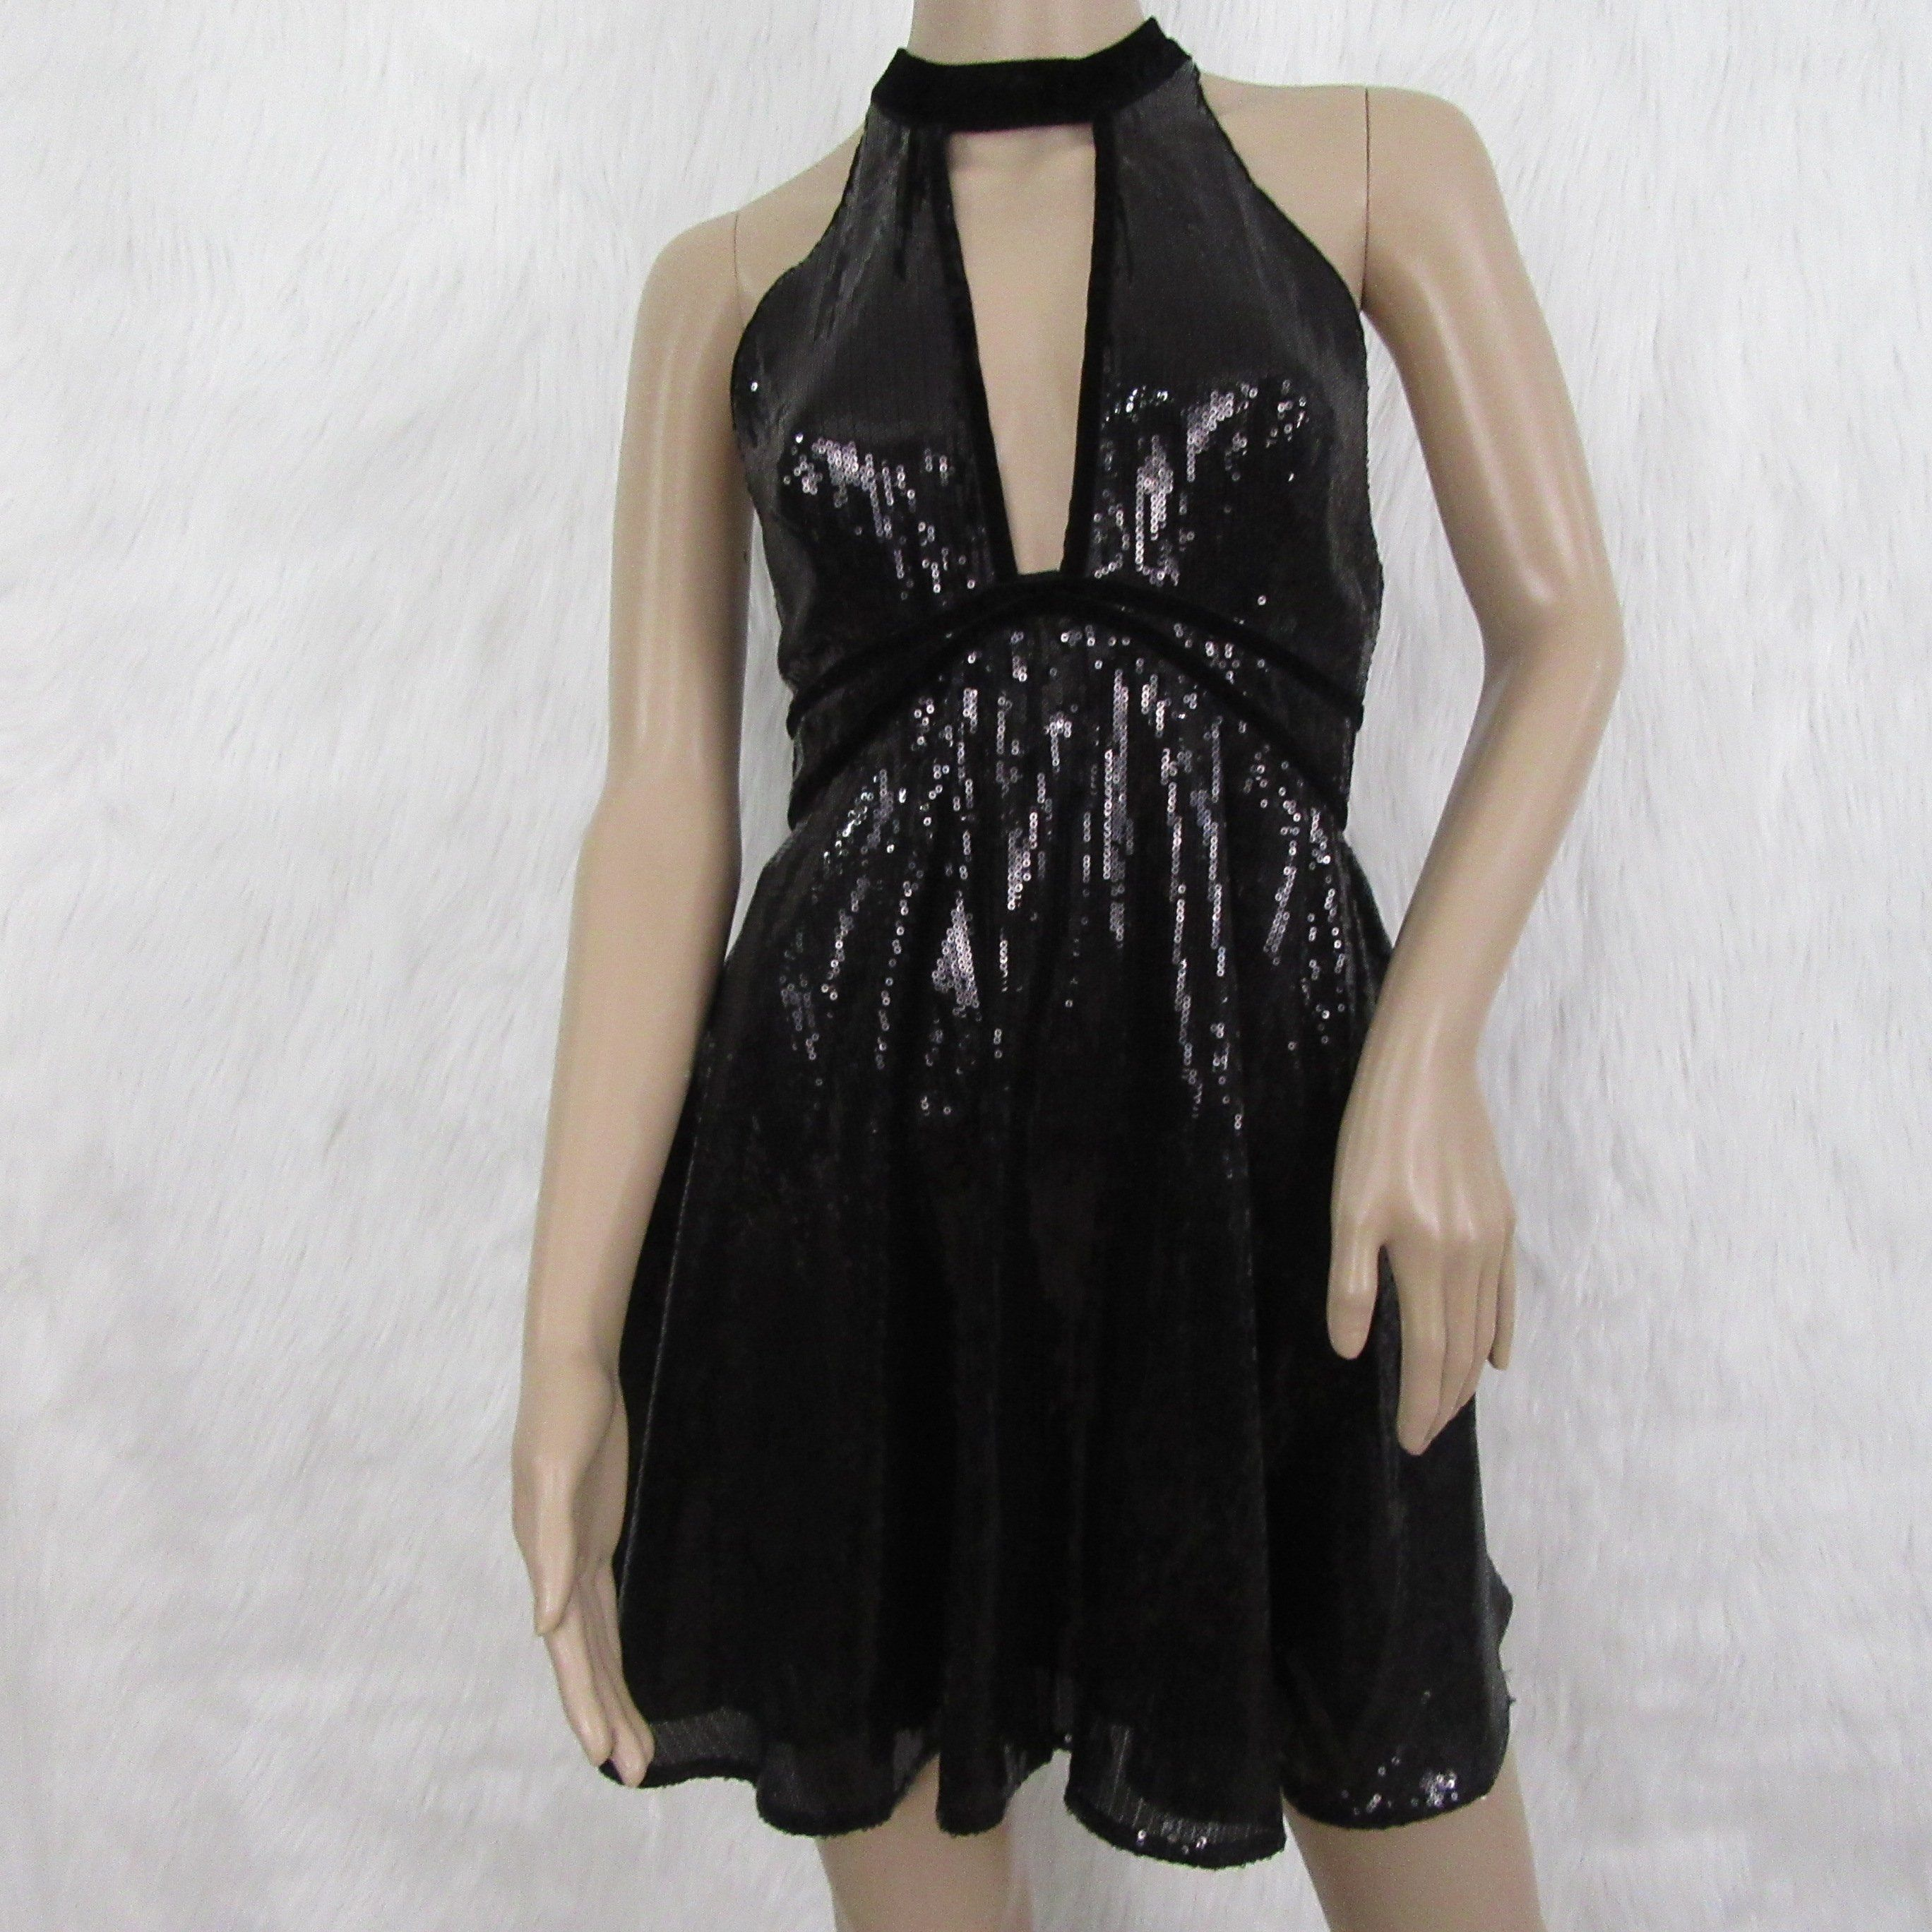 cc7915d5d0a Free People Women s Black Sequin and Velvet Fit and Flare Dress ...